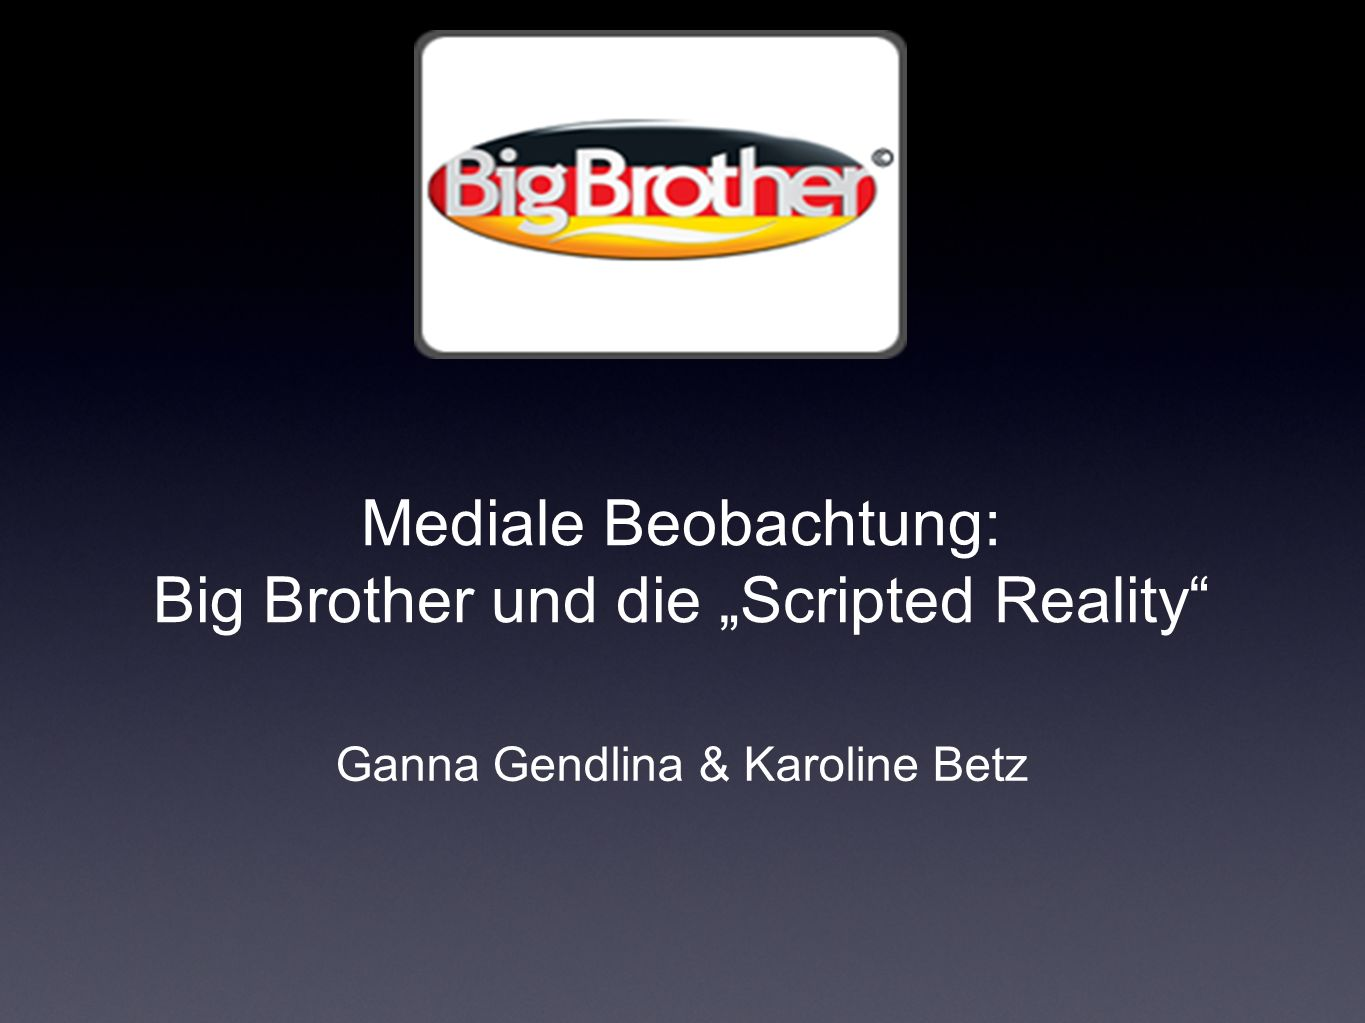 "Mediale Beobachtung: Big Brother und die ""Scripted Reality"